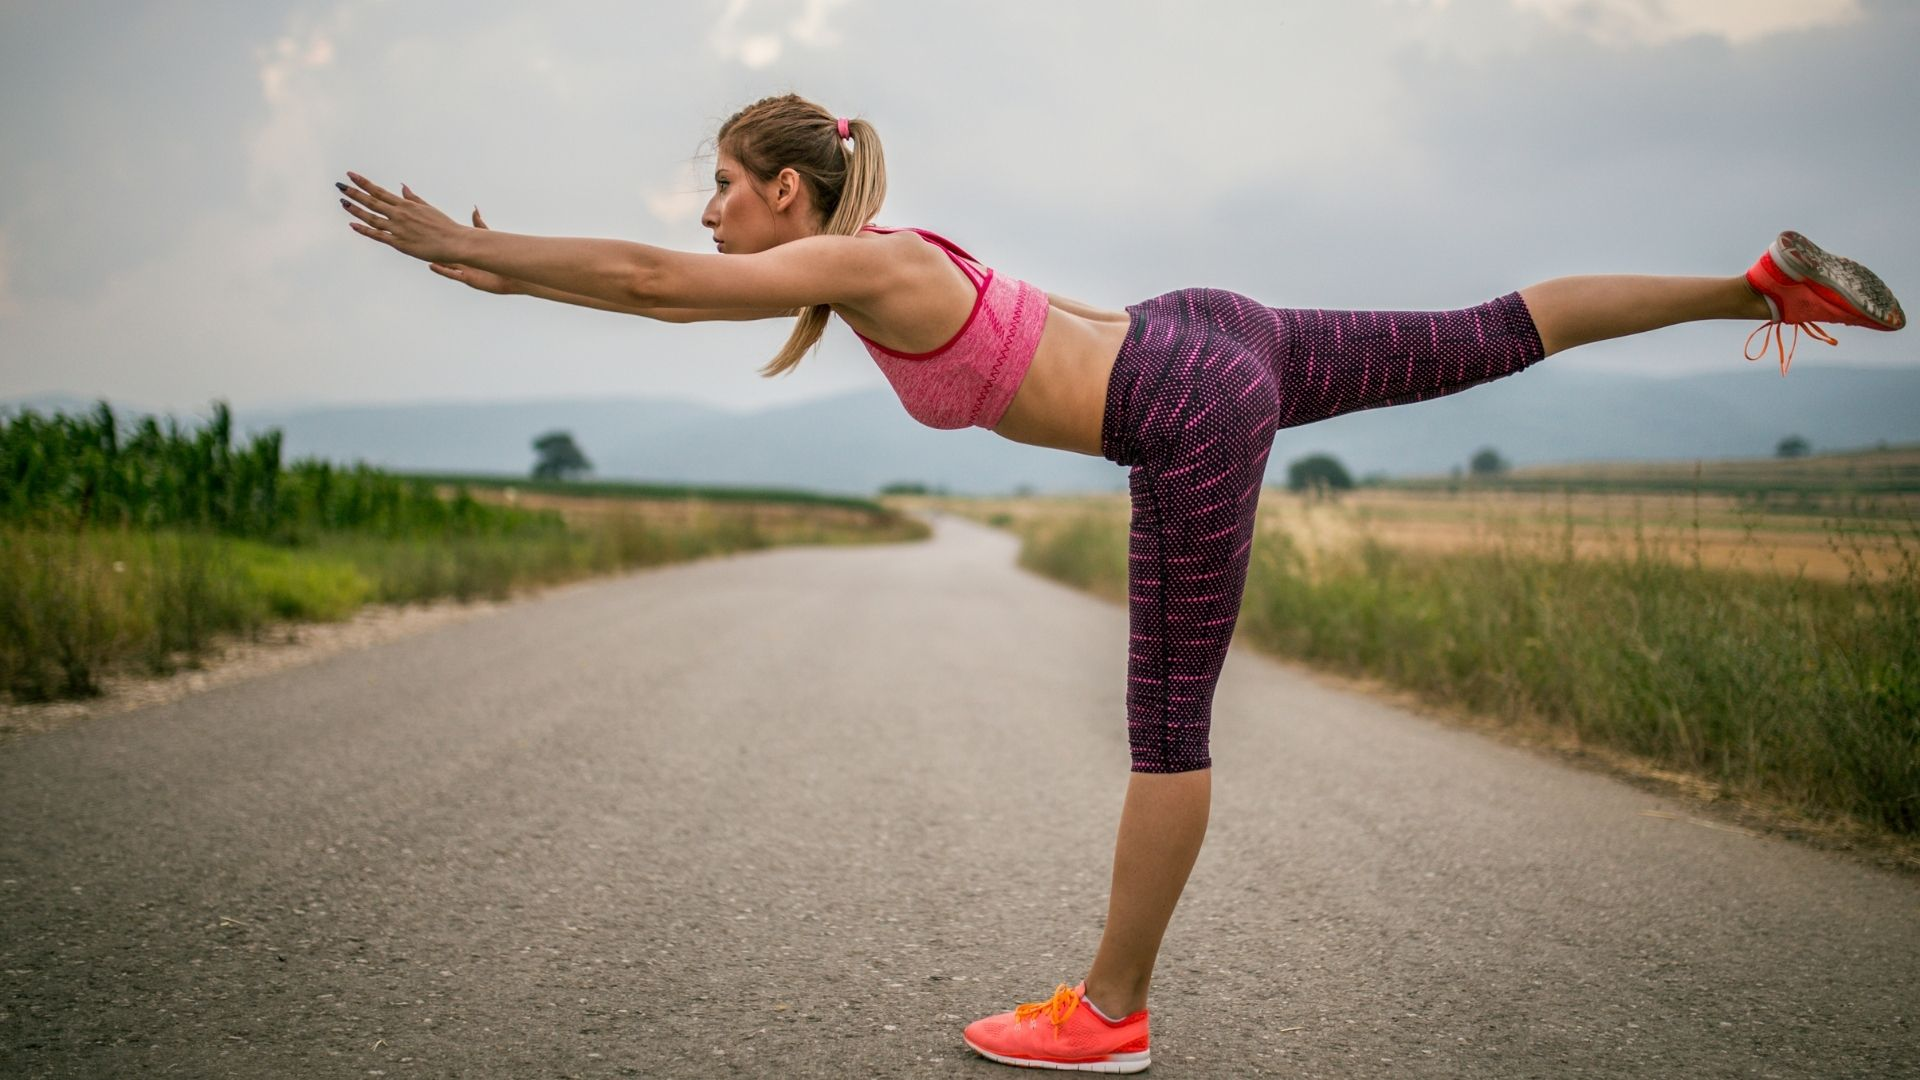 If you prefer to work out in the morning here's how to prep to smash your fitness goals with early morning workouts and fasted cardio. #morningworkouts #health #workoutsforwomen #howtoworkoutinthemorning